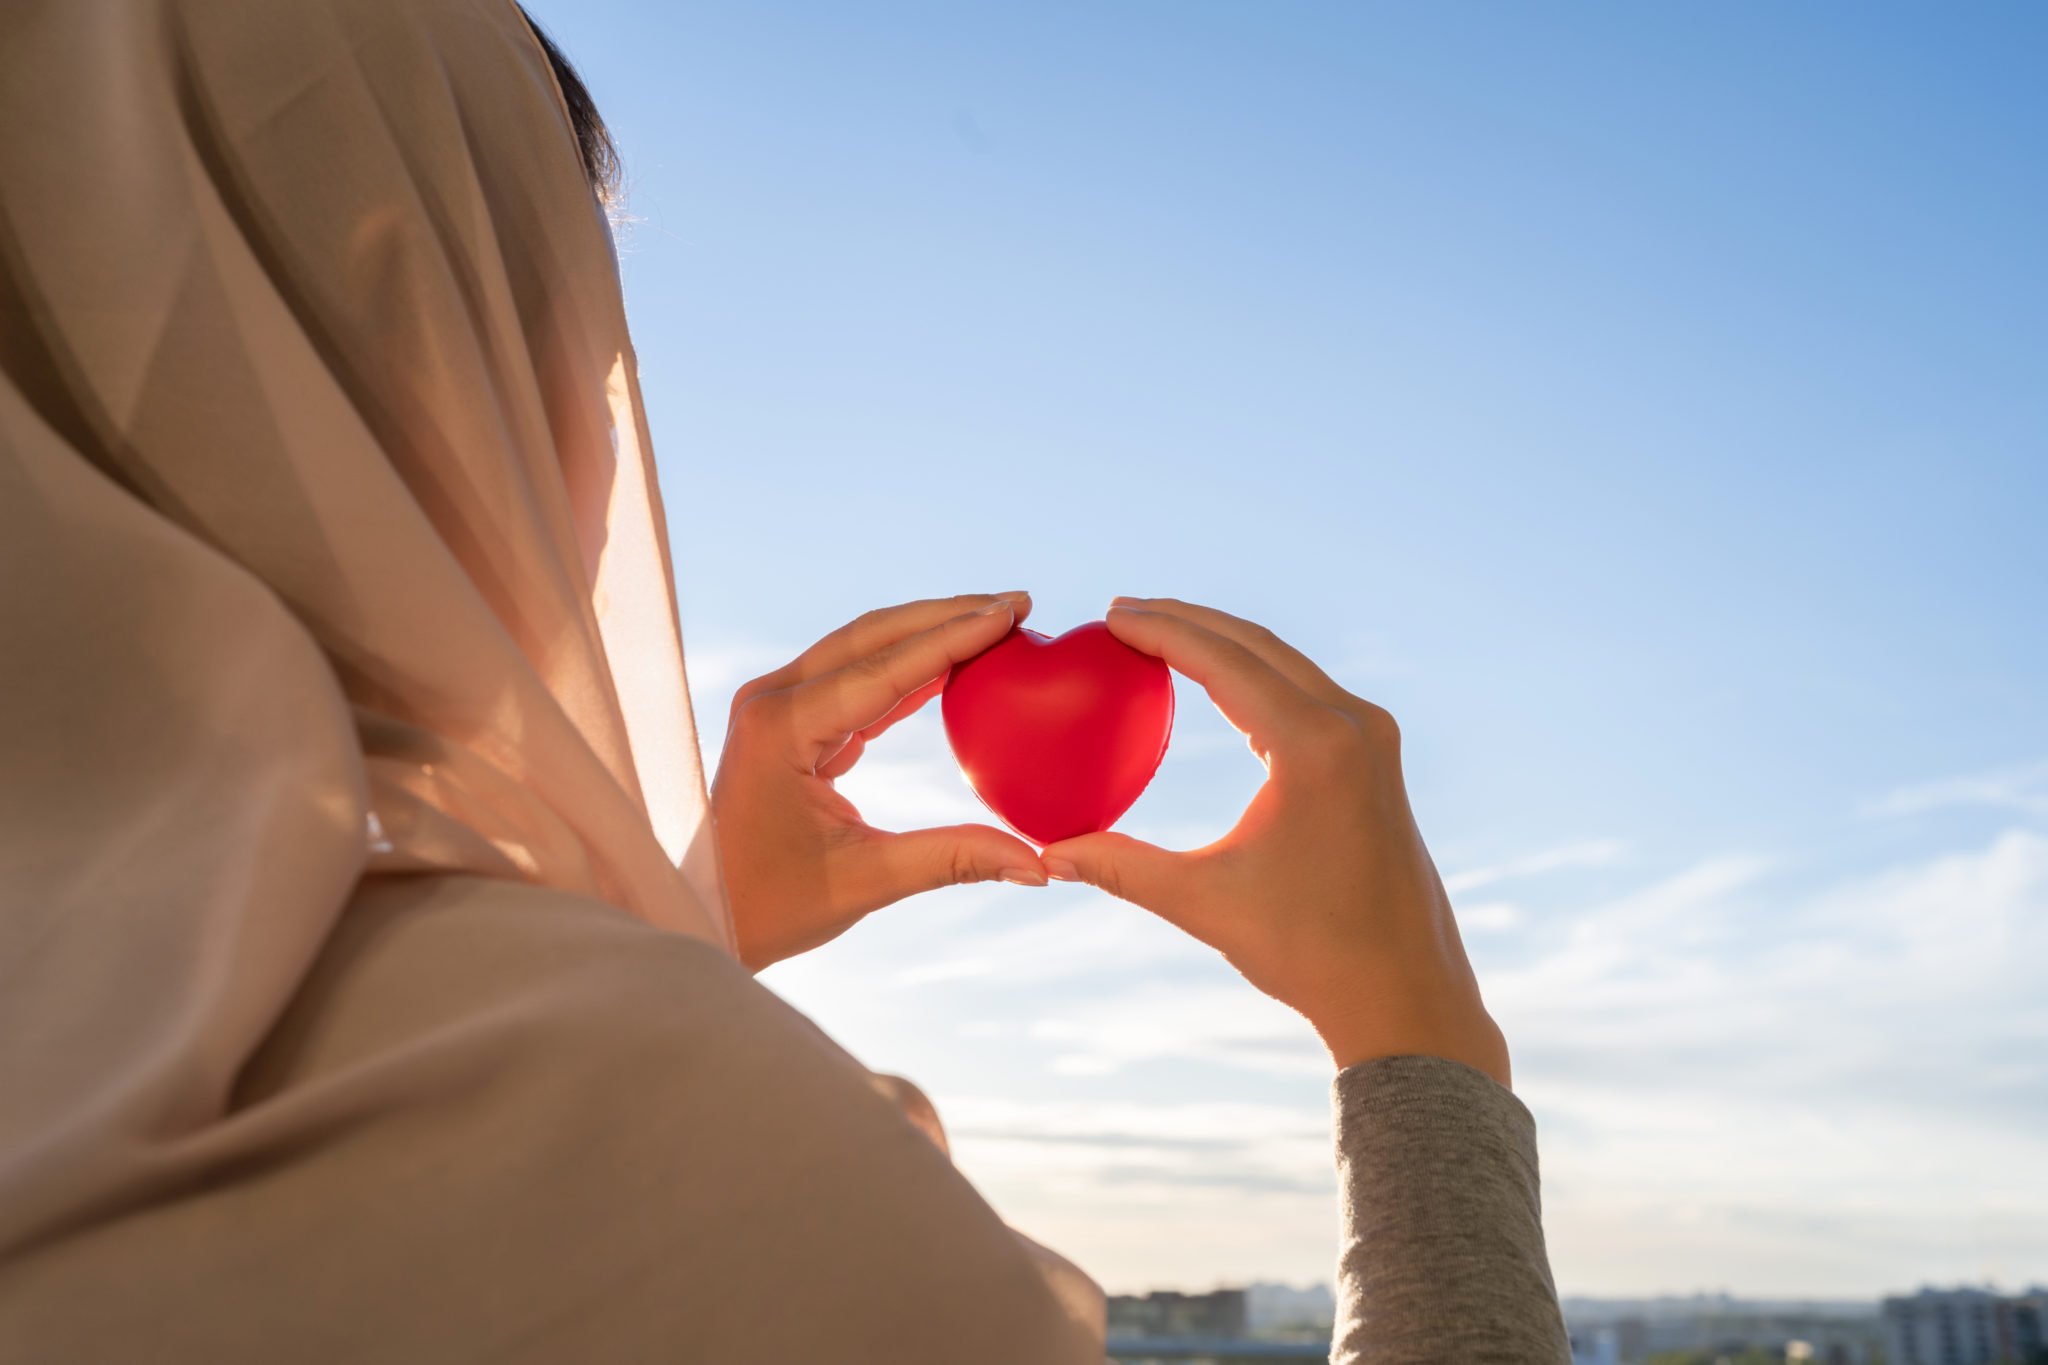 Silhouette,Of,Muslim,Woman,In,Head,Scarf,With,Red,Heart